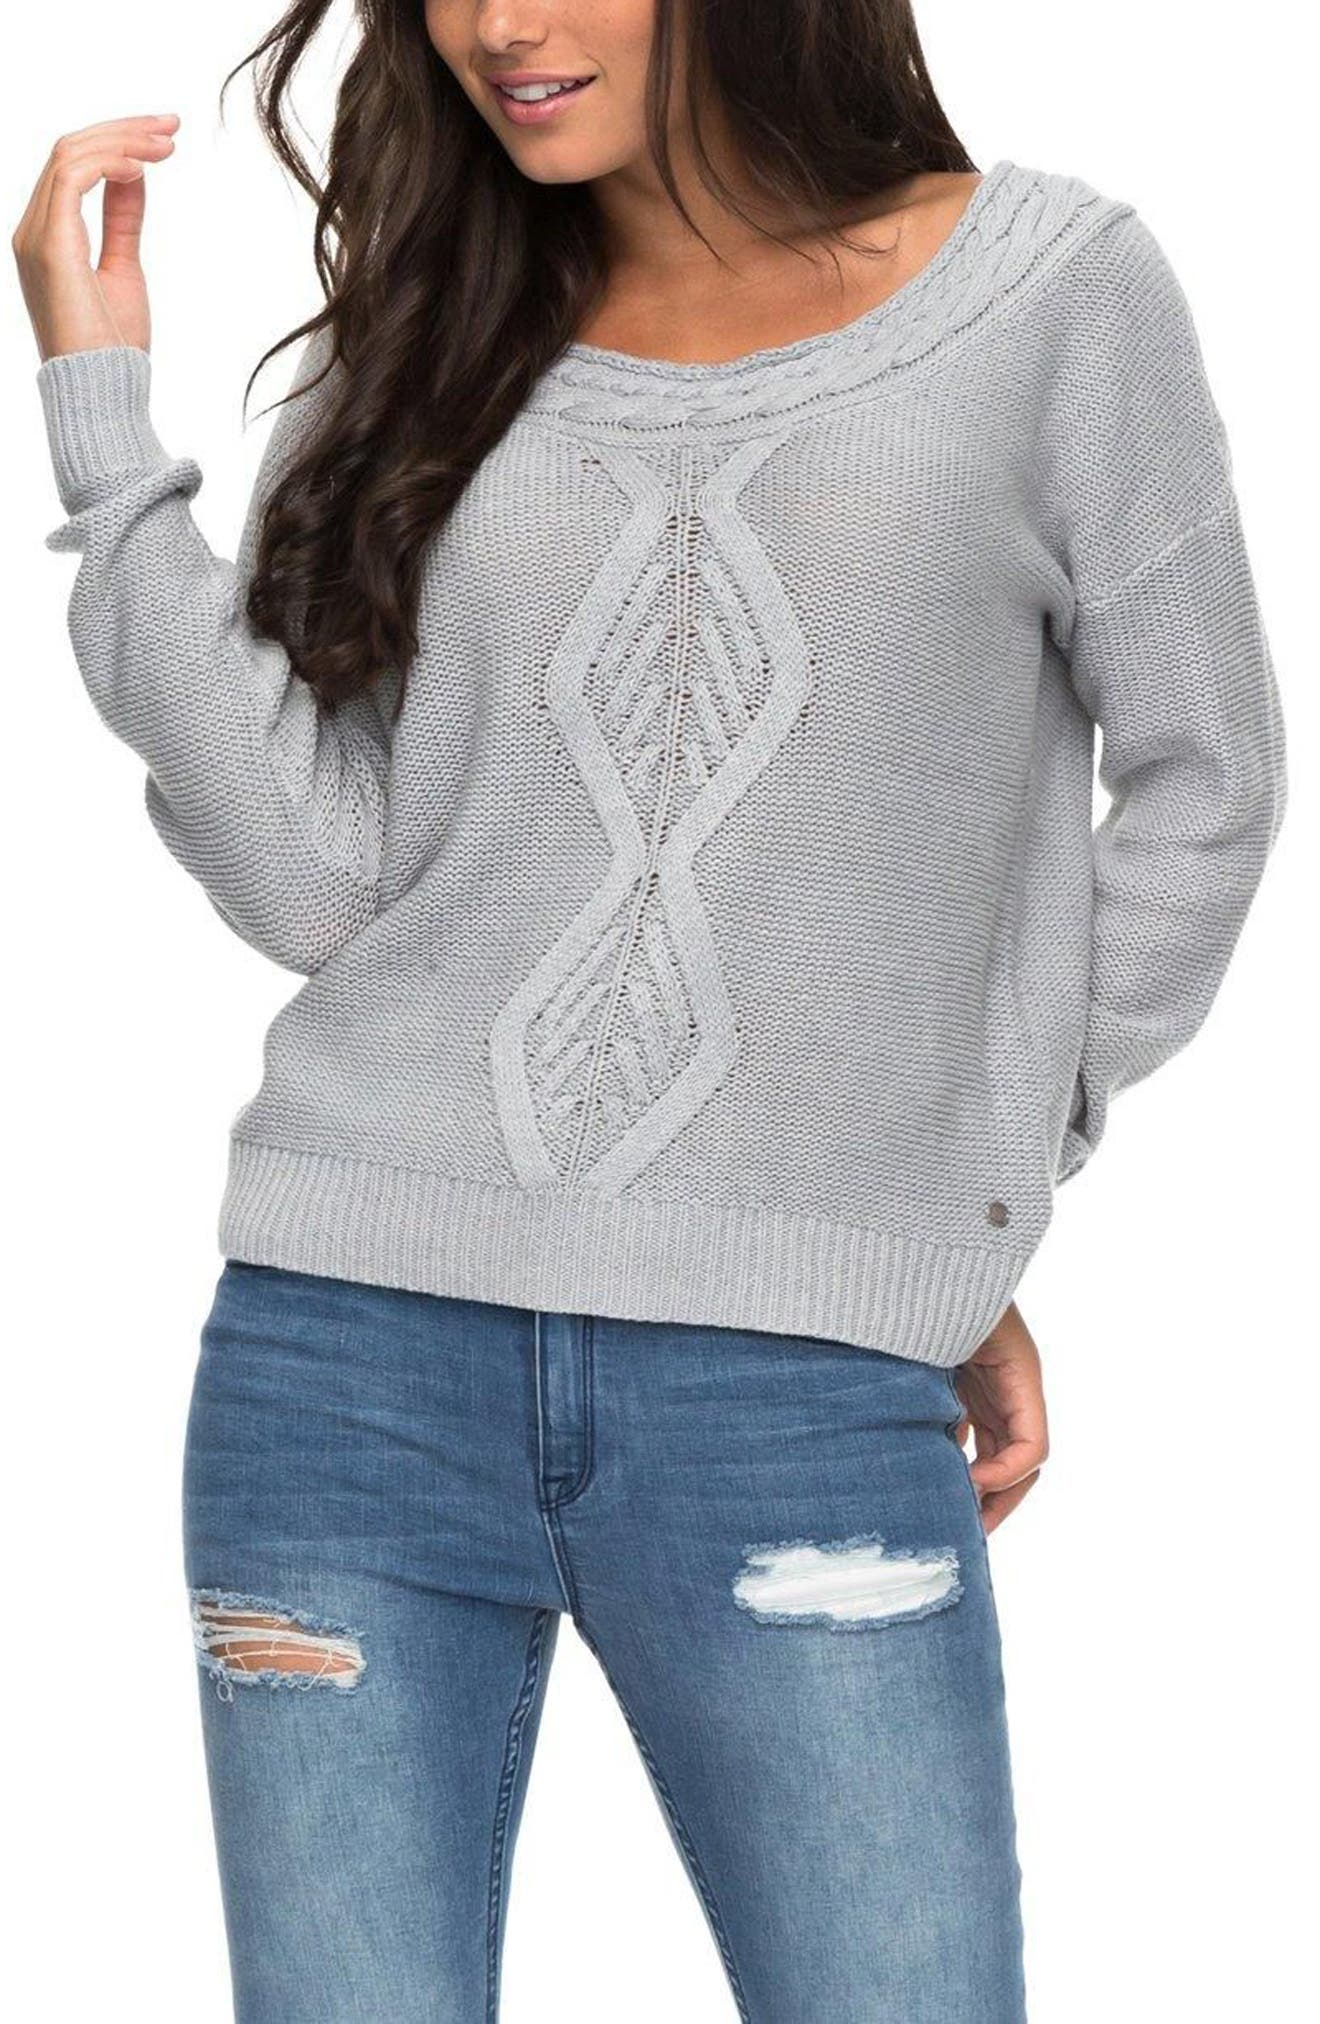 Choose to Shine Sweater,                             Main thumbnail 1, color,                             Heritage Heather